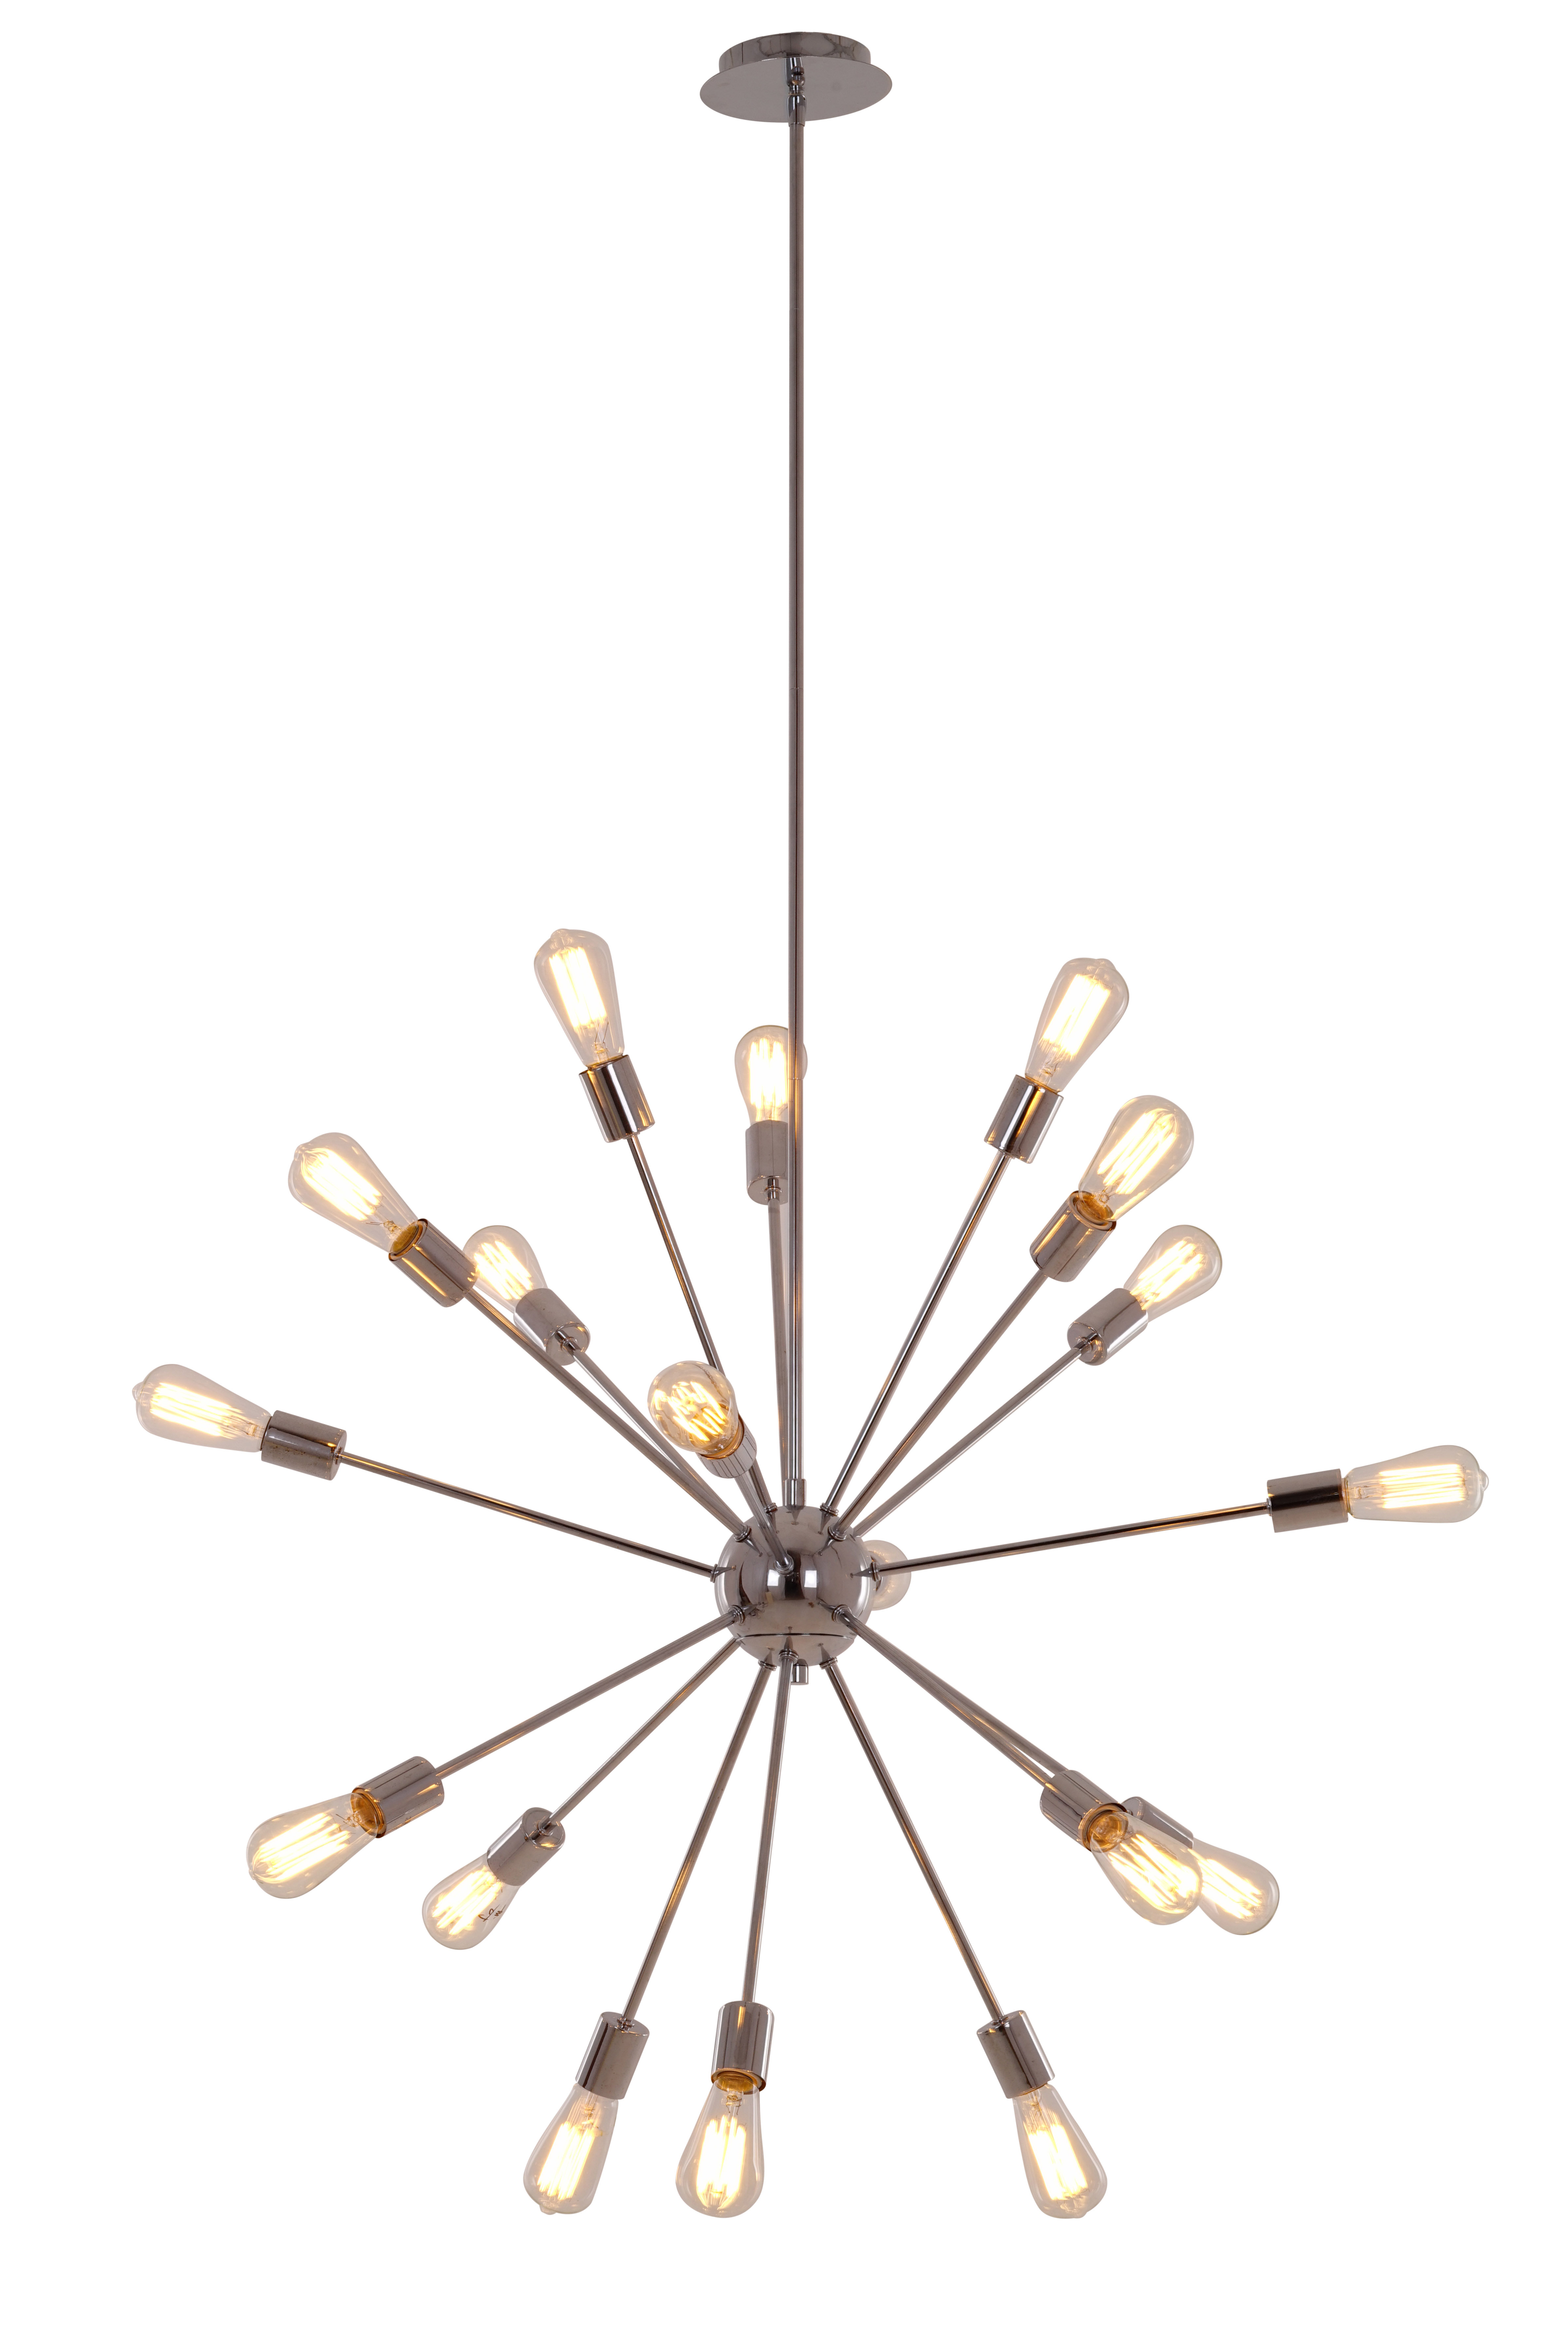 Bach 18 Light Chandelier With Regard To Famous Defreitas 18 Light Sputnik Chandeliers (View 1 of 25)